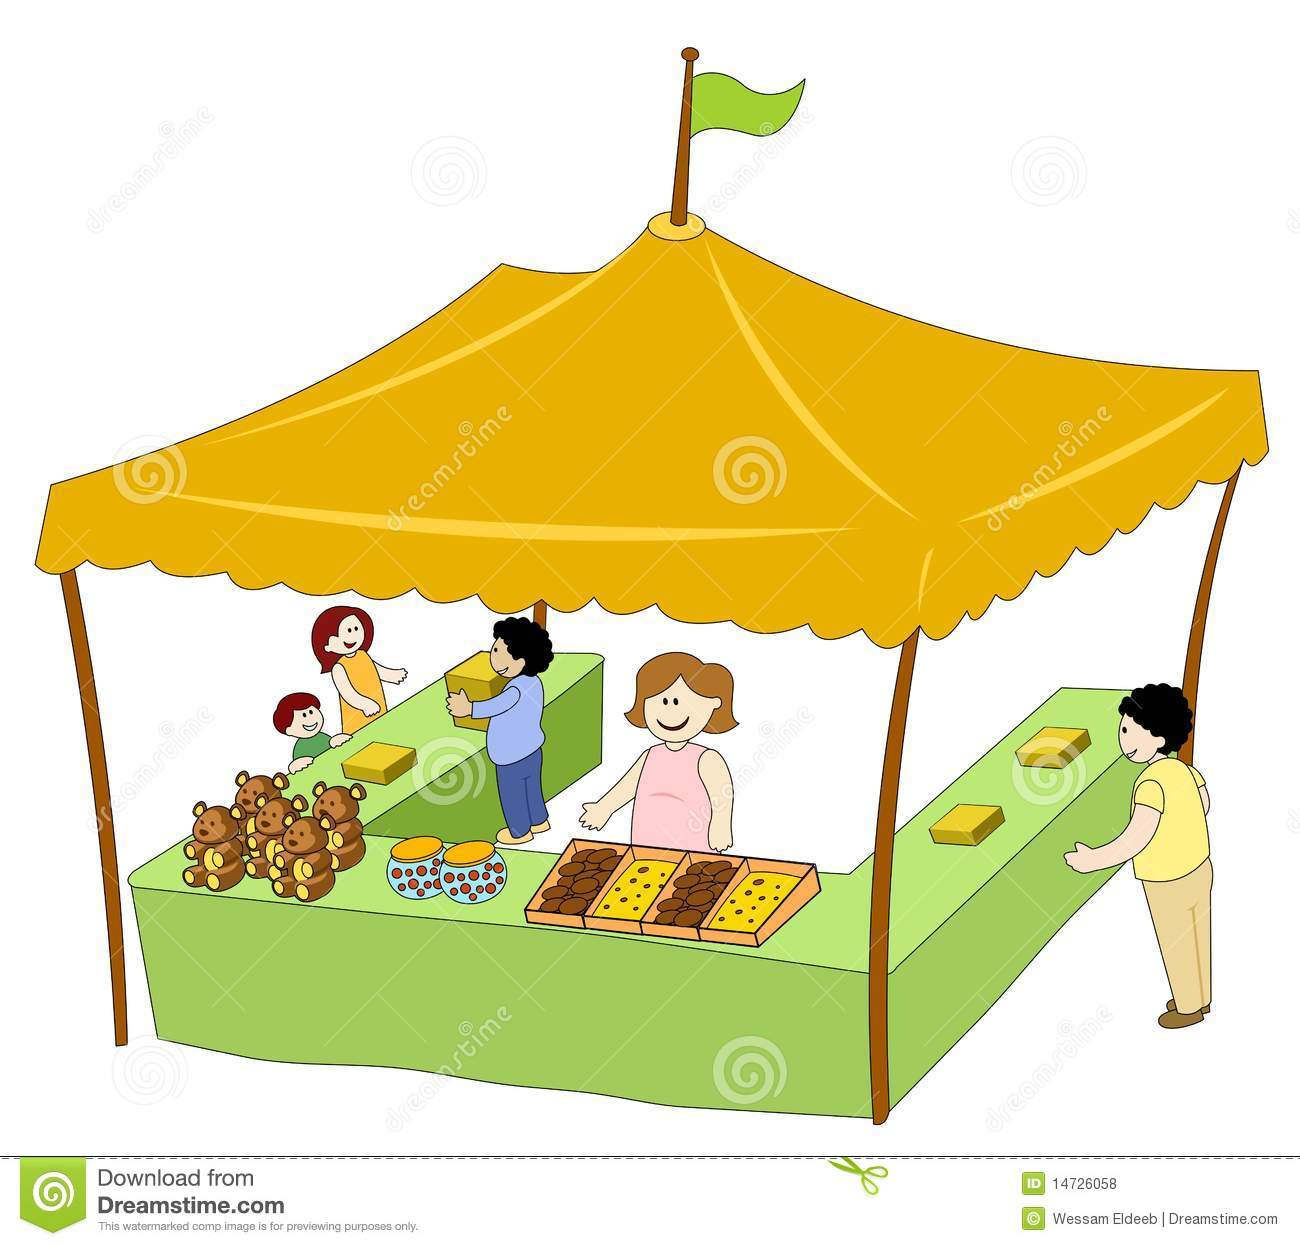 Tent clipart carnival booth Clipart Clip booth%20clipart Panda Free